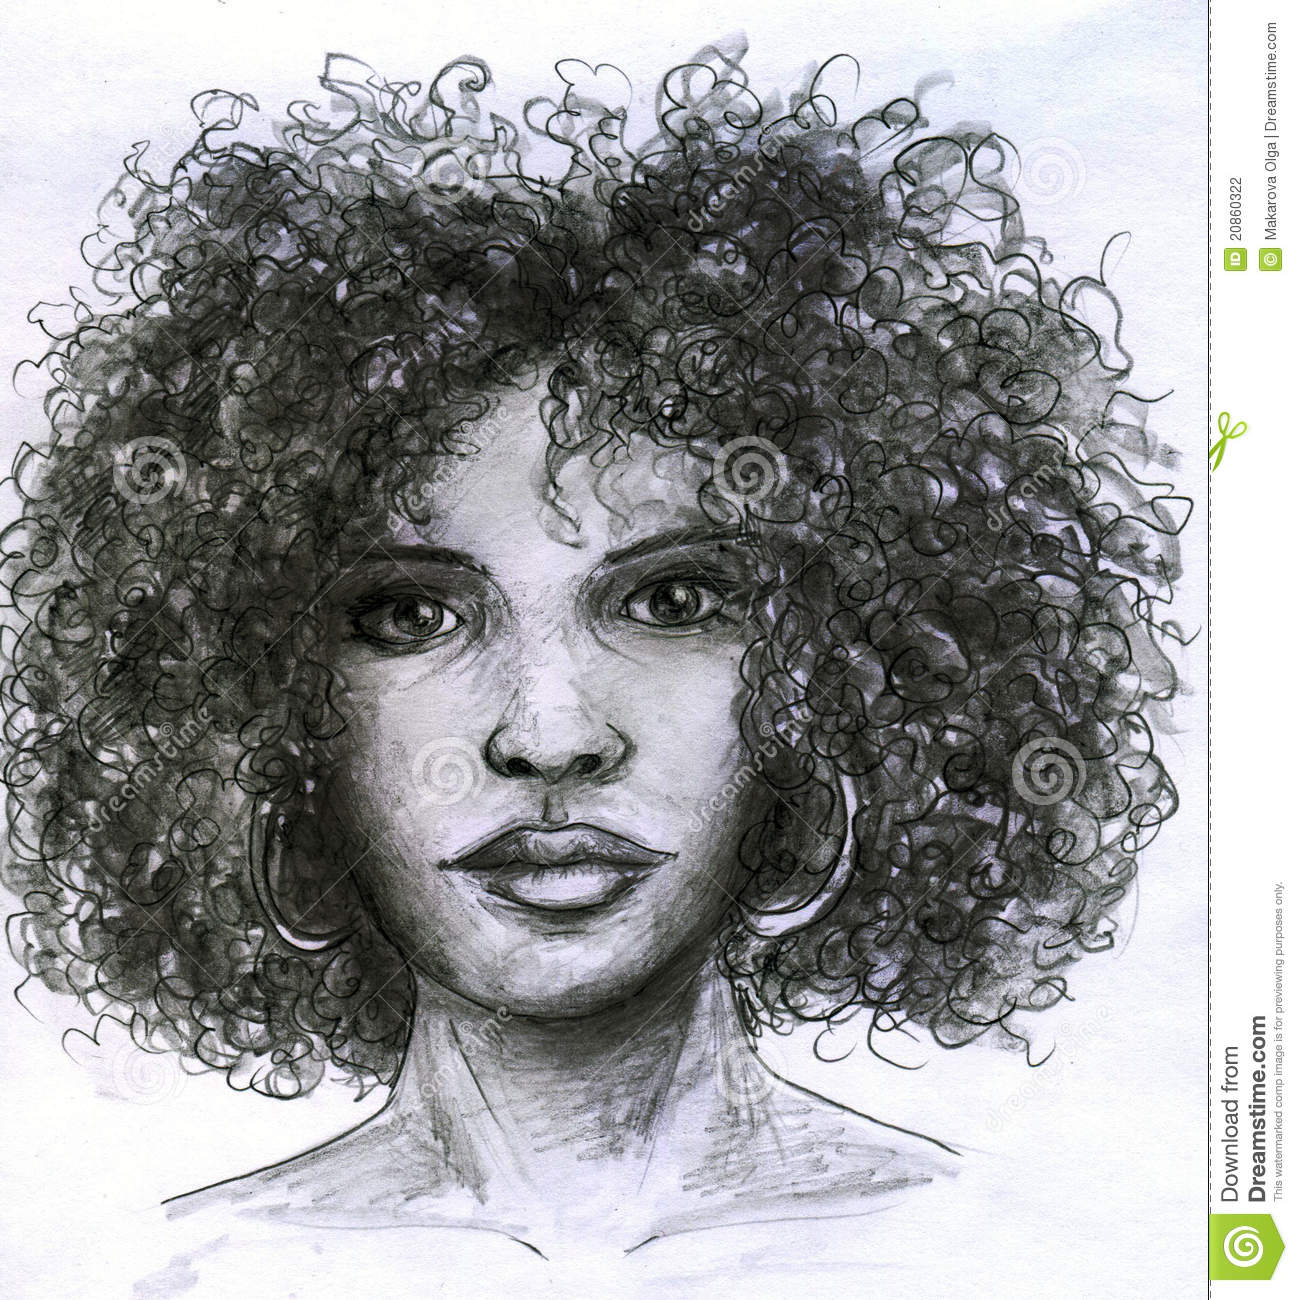 African girl with curly hair and big earrings pencil drawing sketch